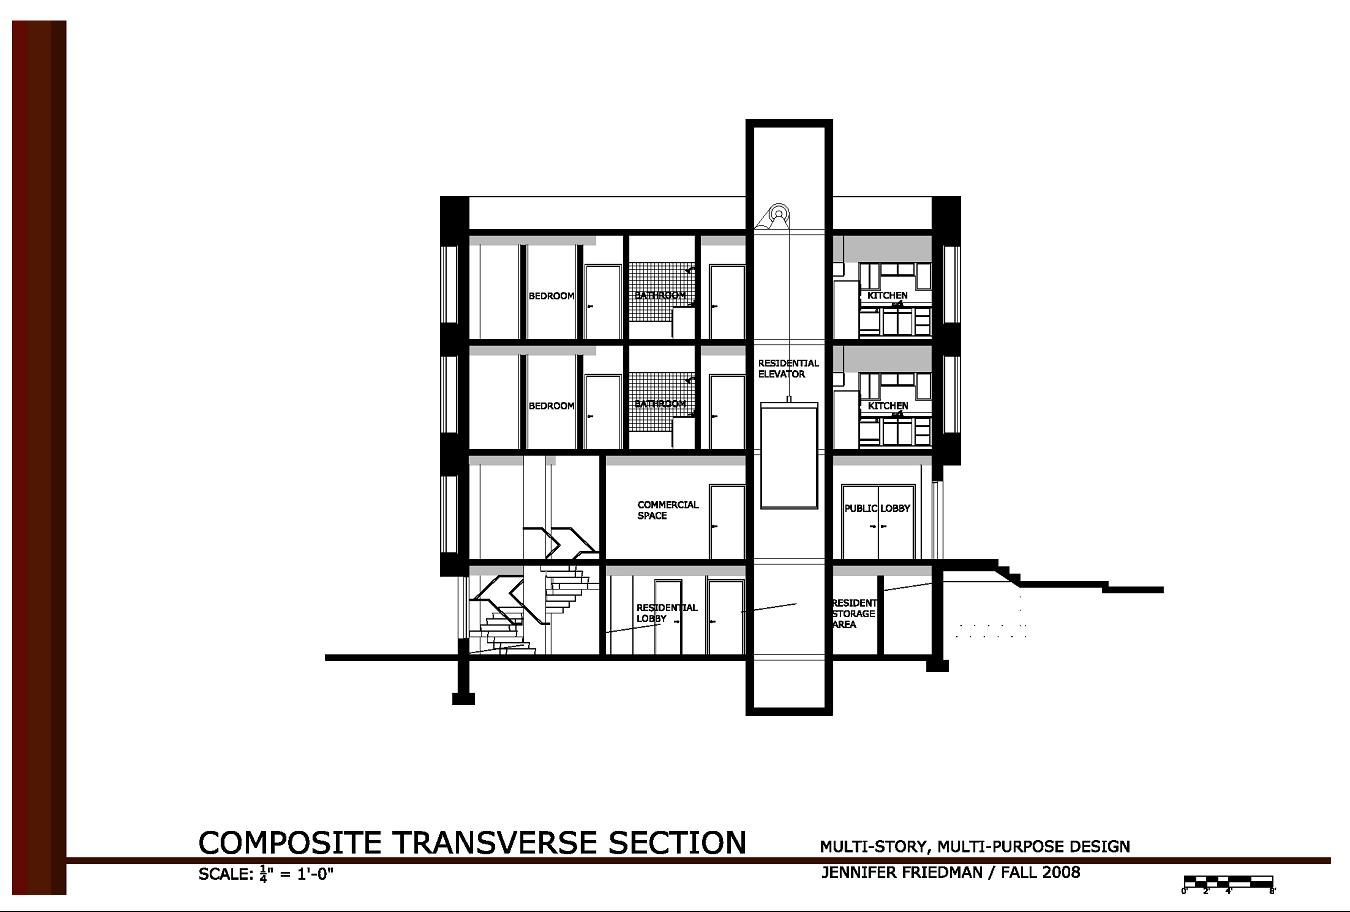 2 Storey Commercial Building Floor Plan Modern House